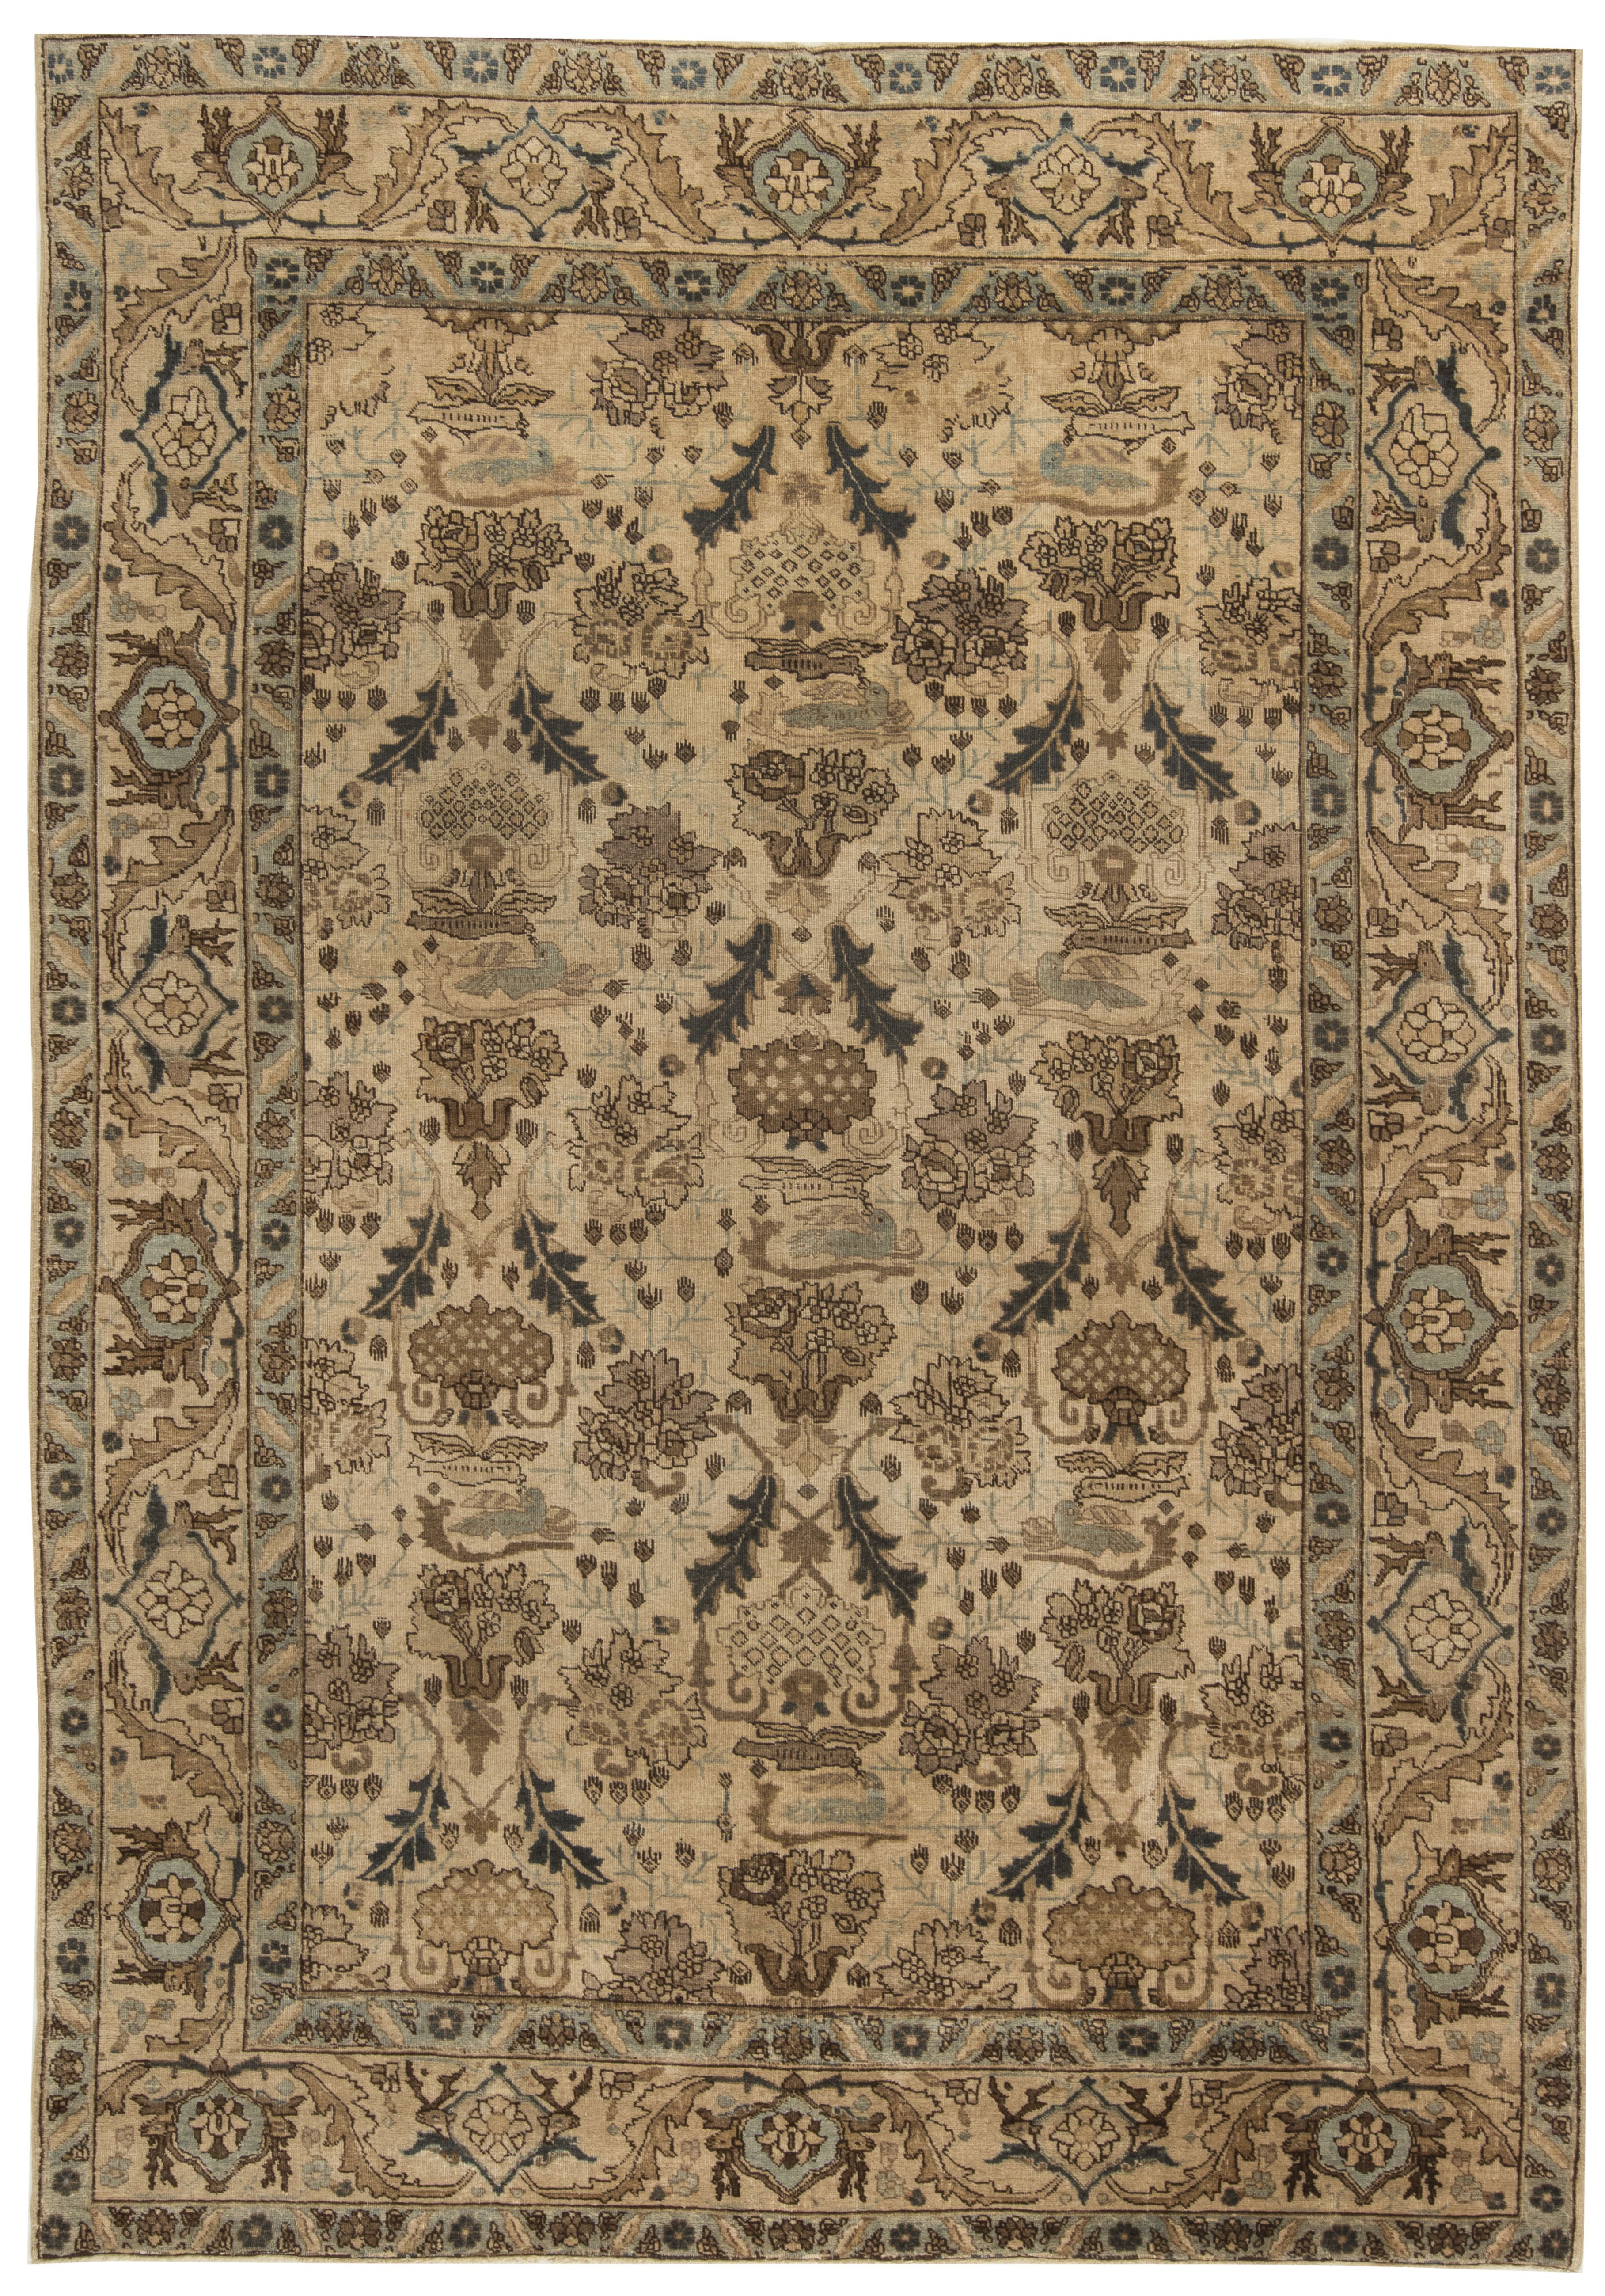 stack cortez rugs the of authentic decorated rug in fine co southwest textiles gentle a for dry area cleaning chem washing and oriental